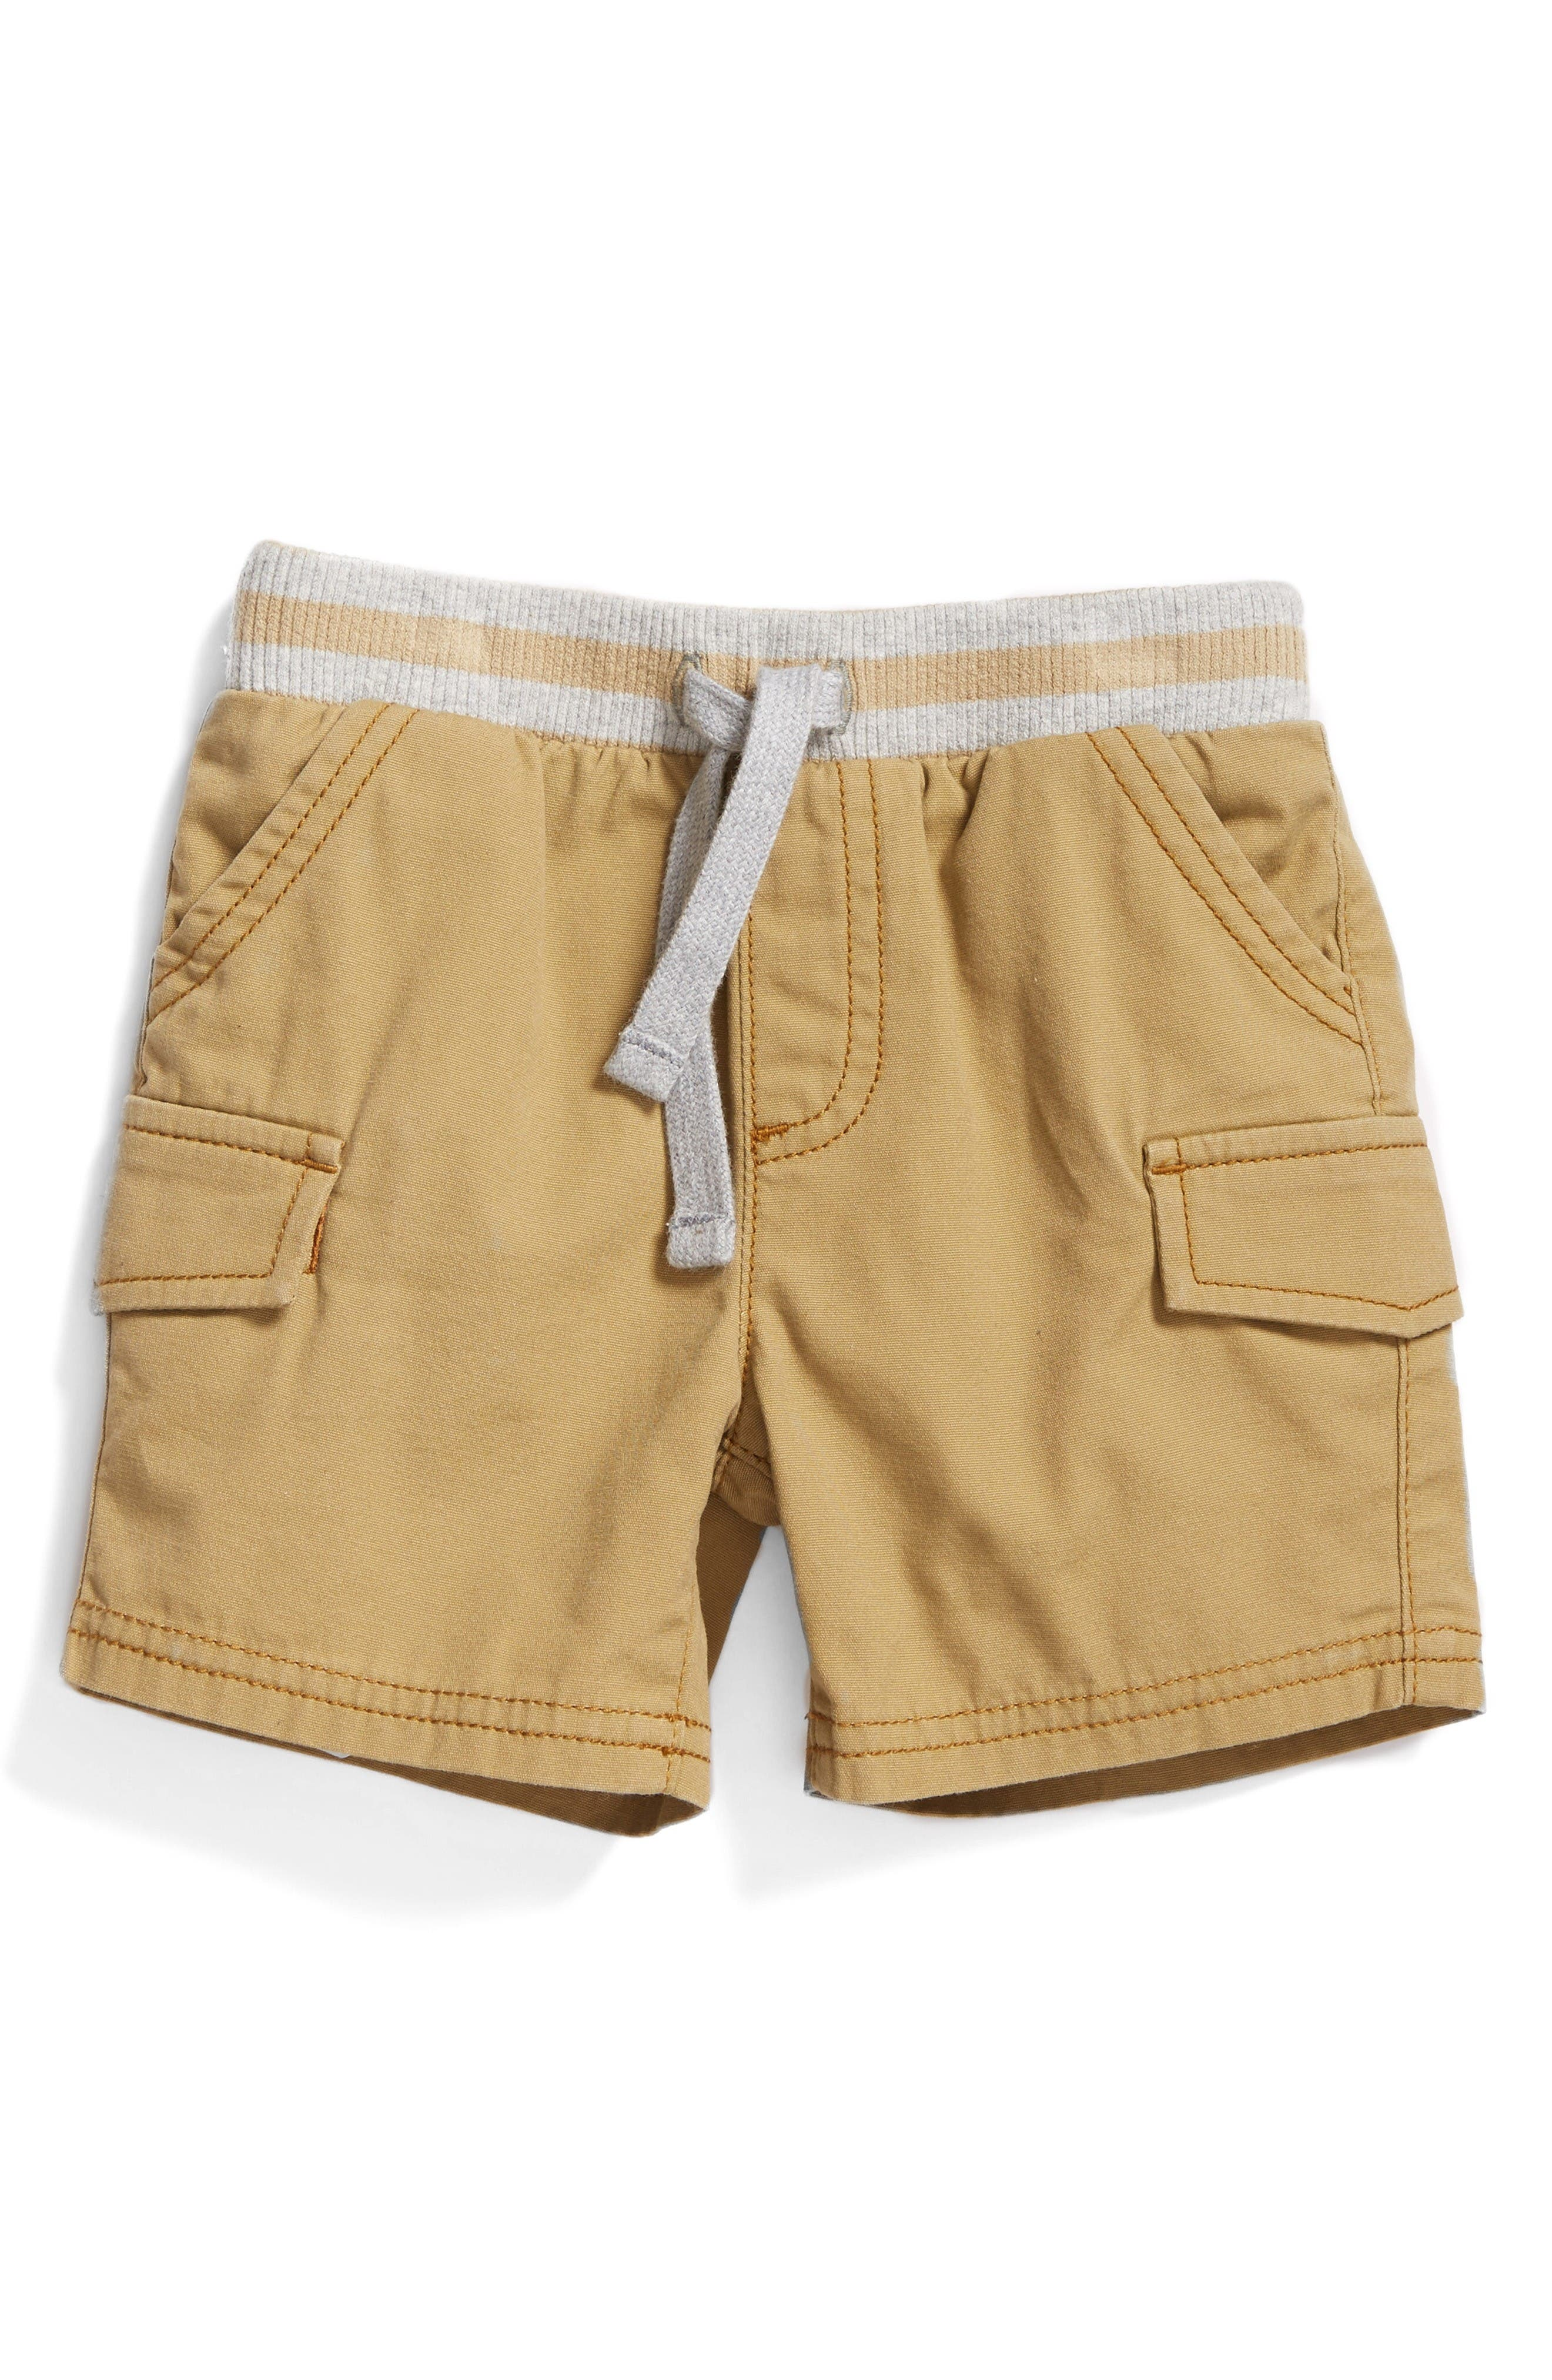 Cargo Shorts,                         Main,                         color, Tan Kelp